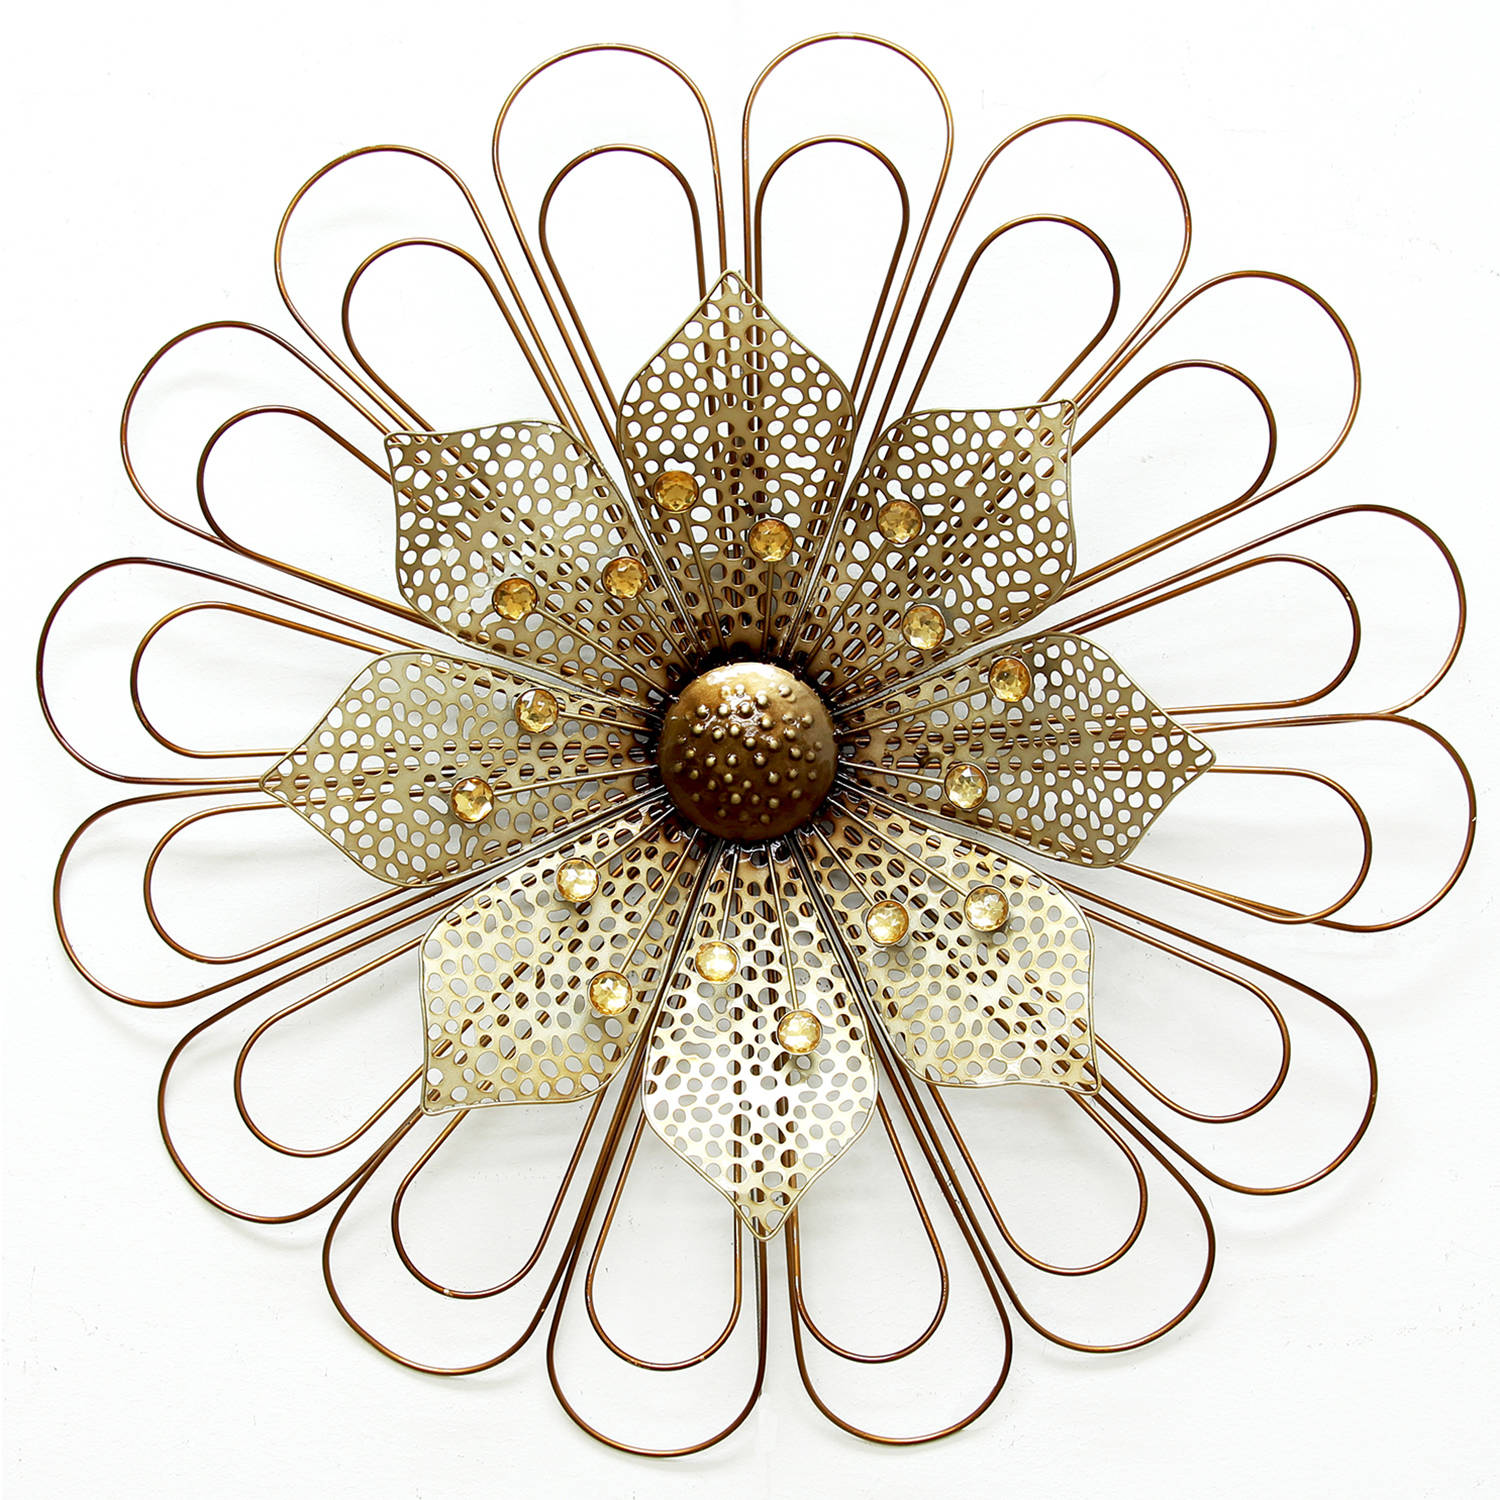 Stratton Home Decor Champagne Wire Flower Wall Decor